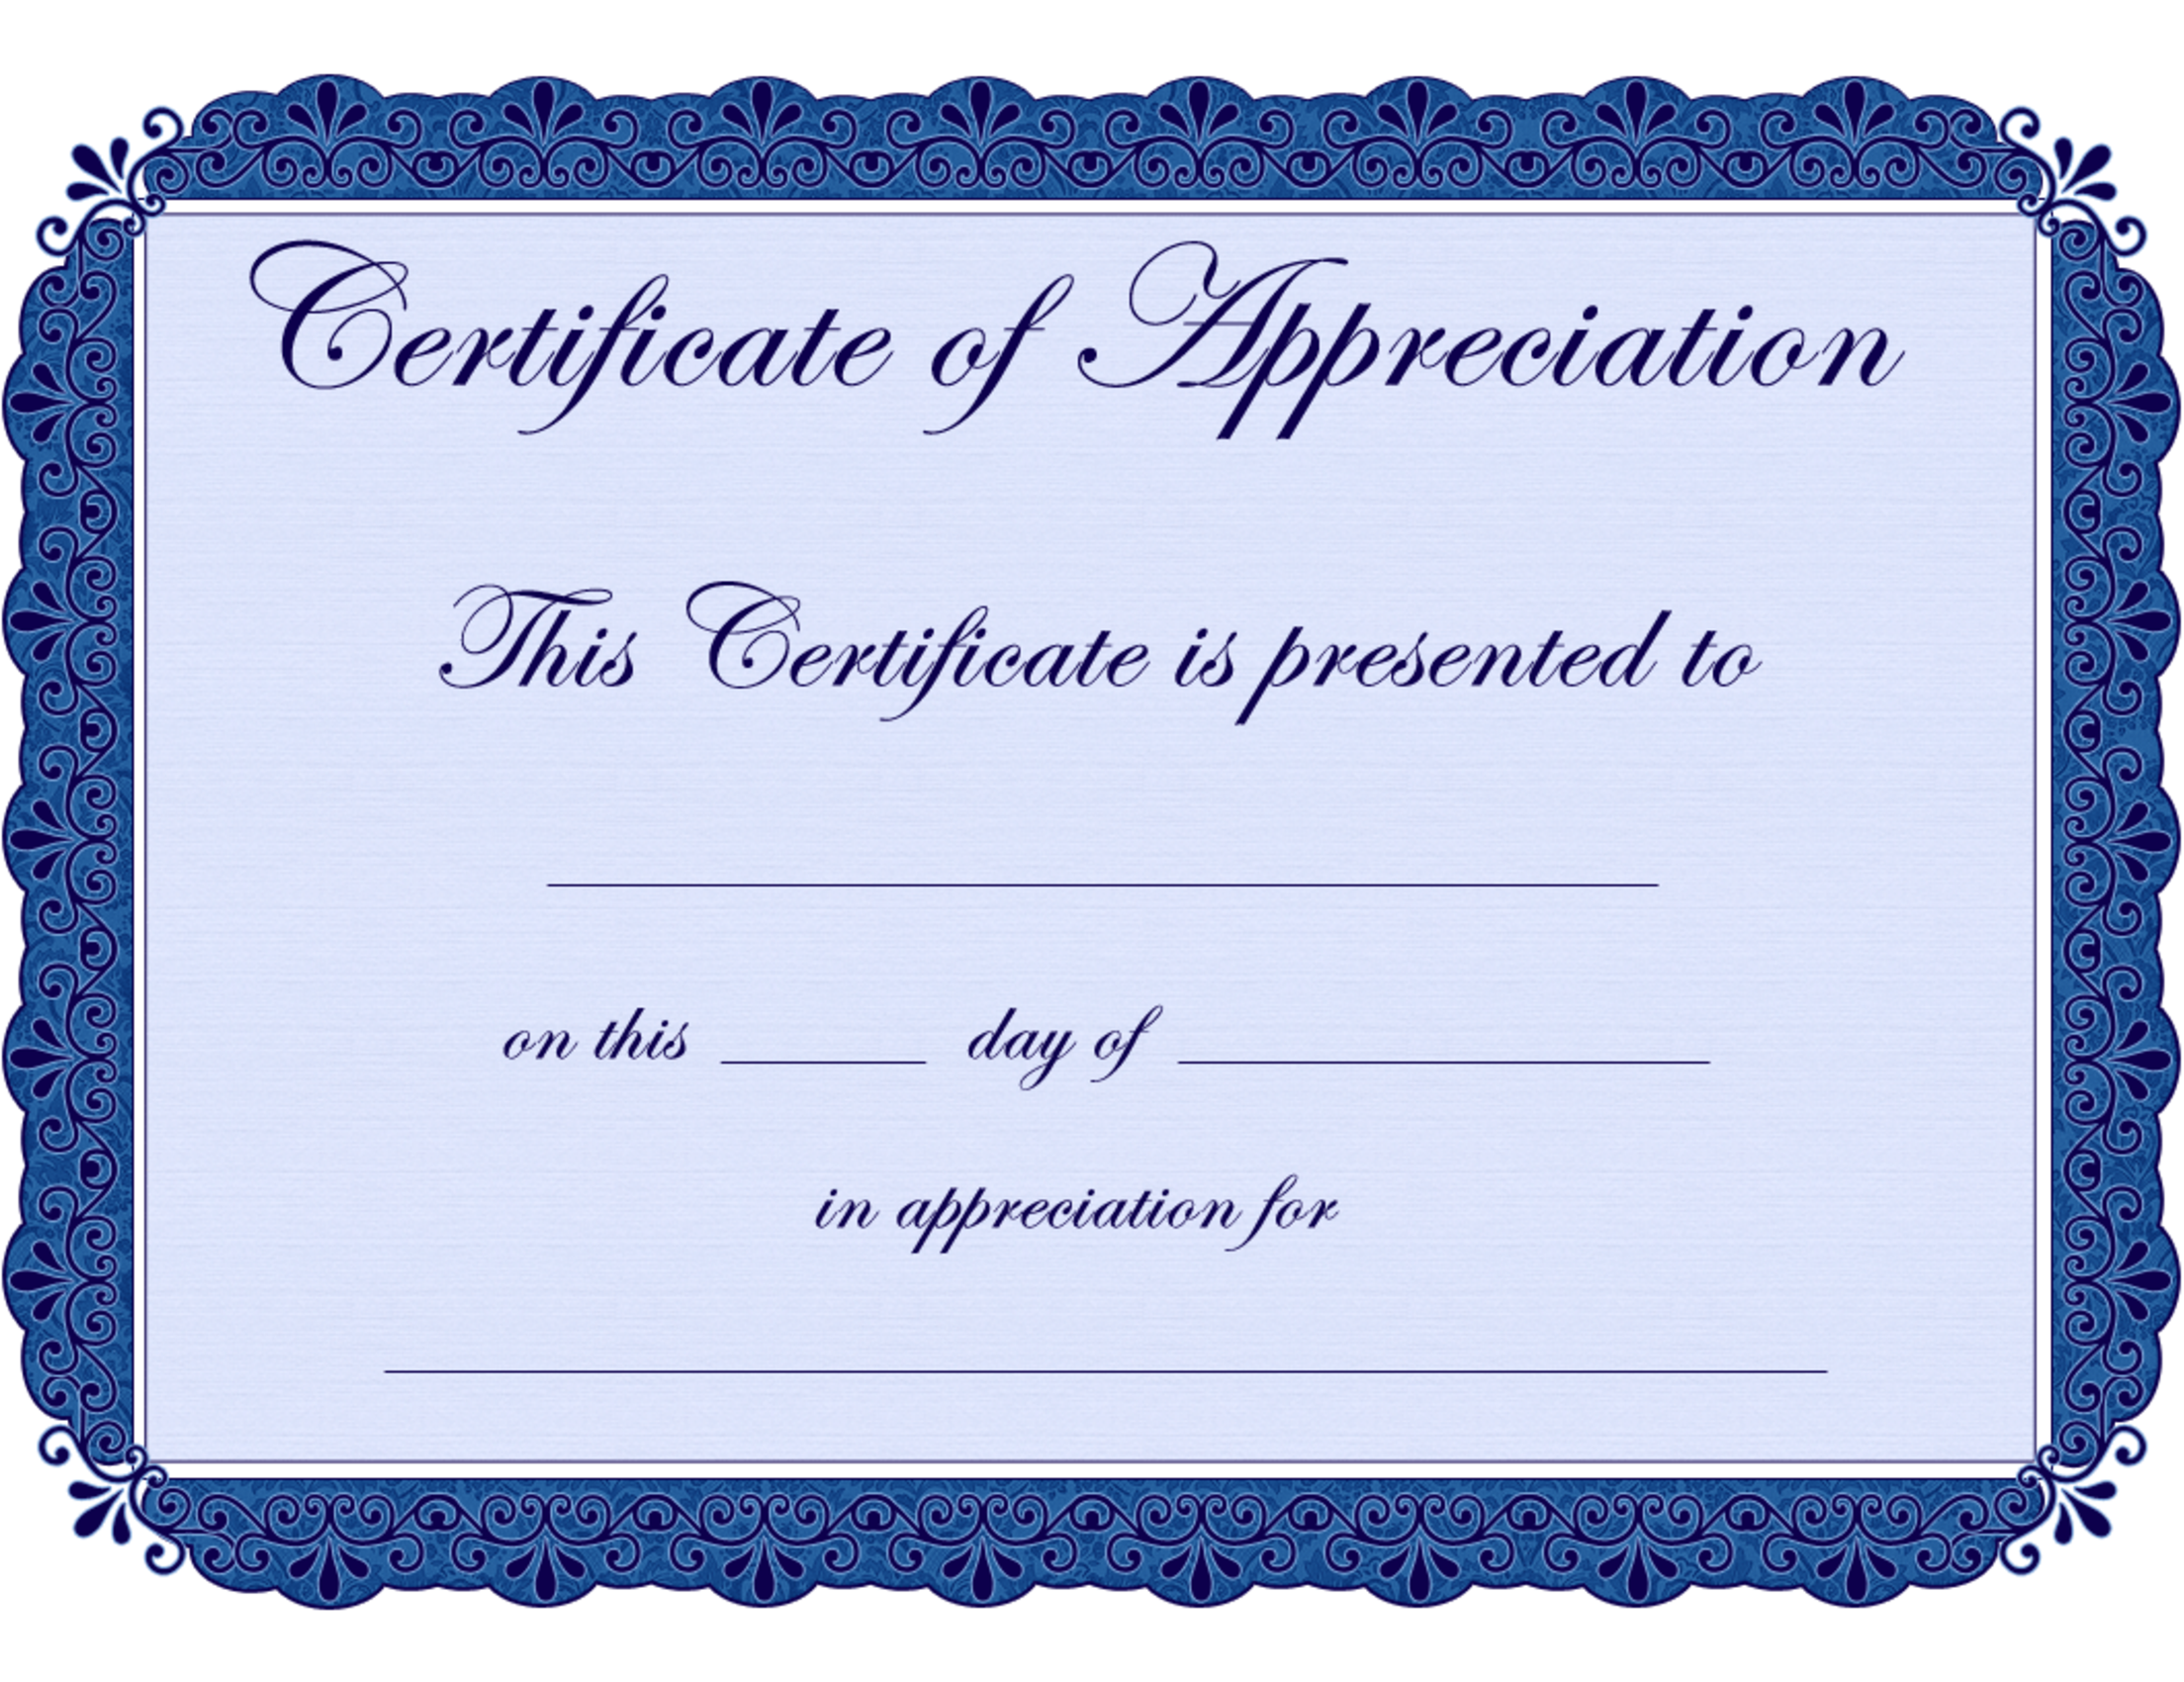 Free printable certificates certificate of appreciation free printable certificates certificate of appreciation certificate yadclub